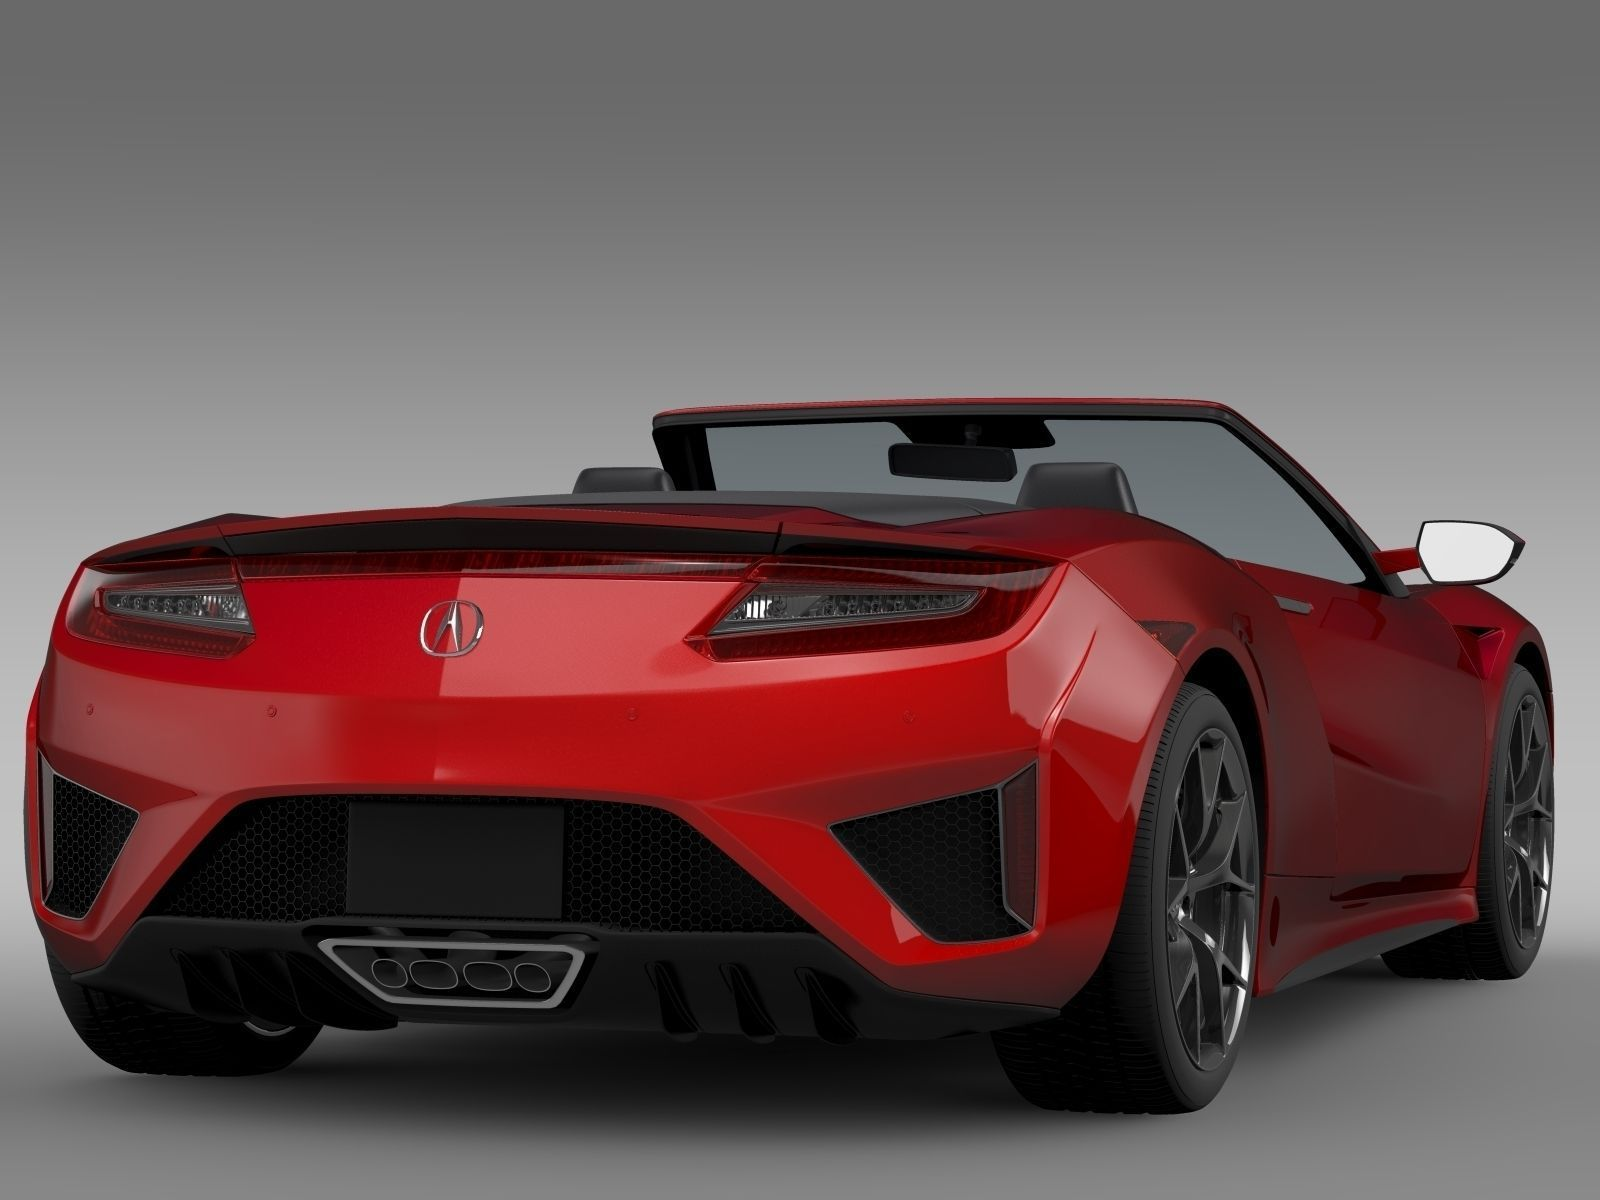 acura nsx cabriolet 2017 3d model max obj 3ds fbx c4d lwo lw lws. Black Bedroom Furniture Sets. Home Design Ideas